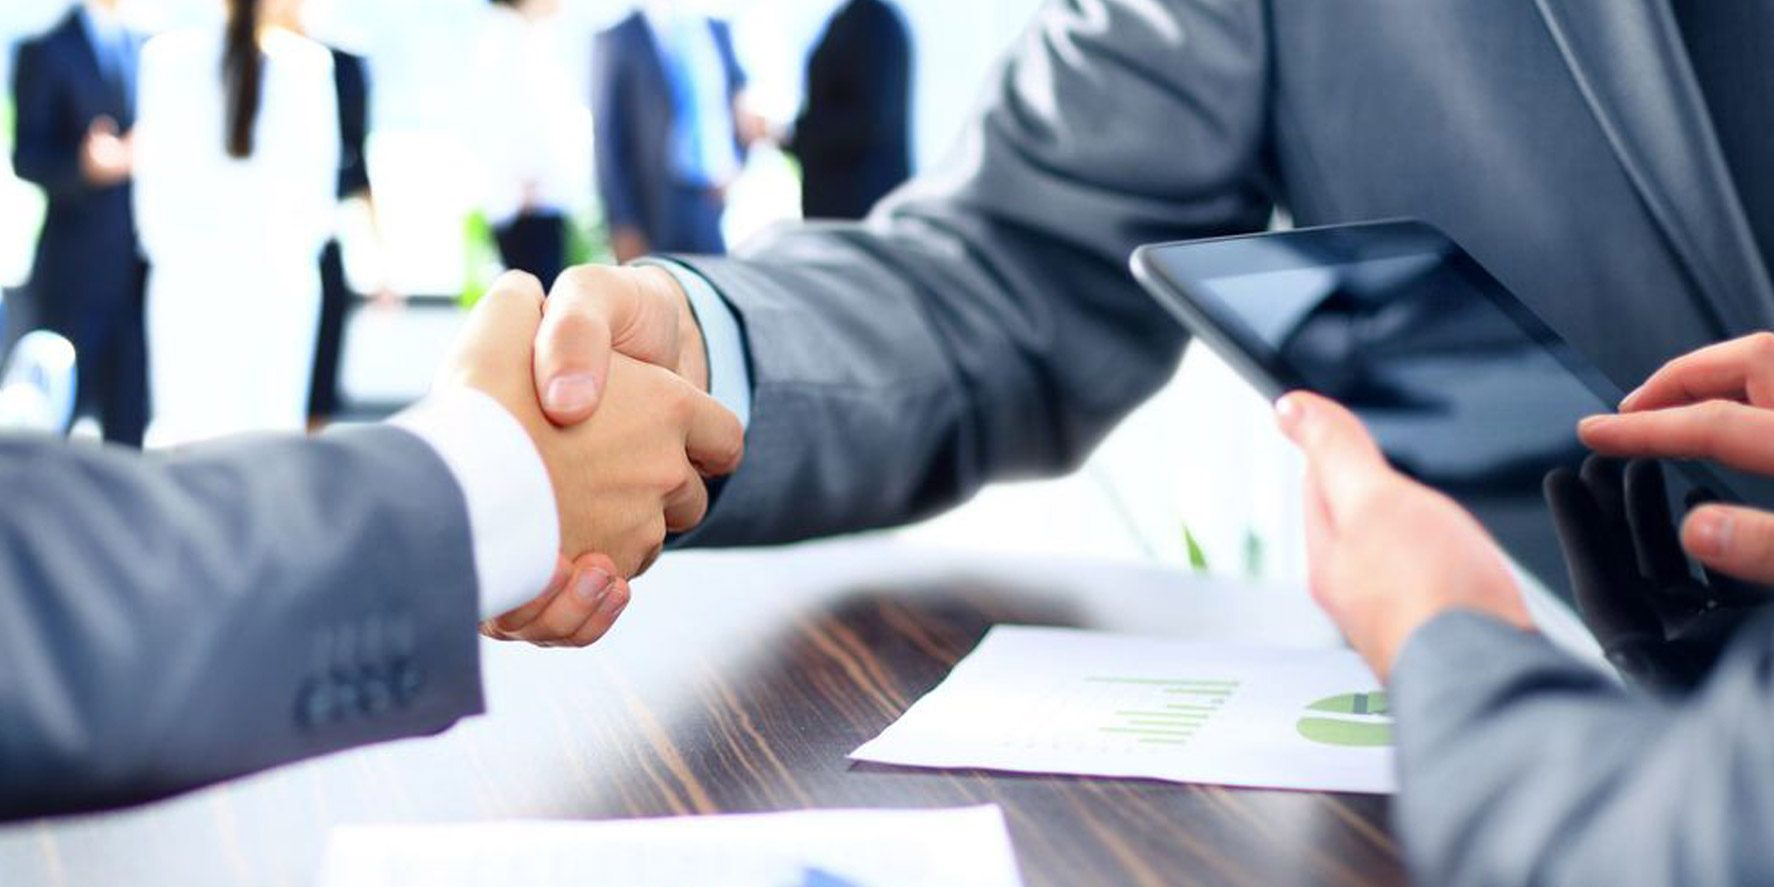 Reasons to hire an immigration consultant